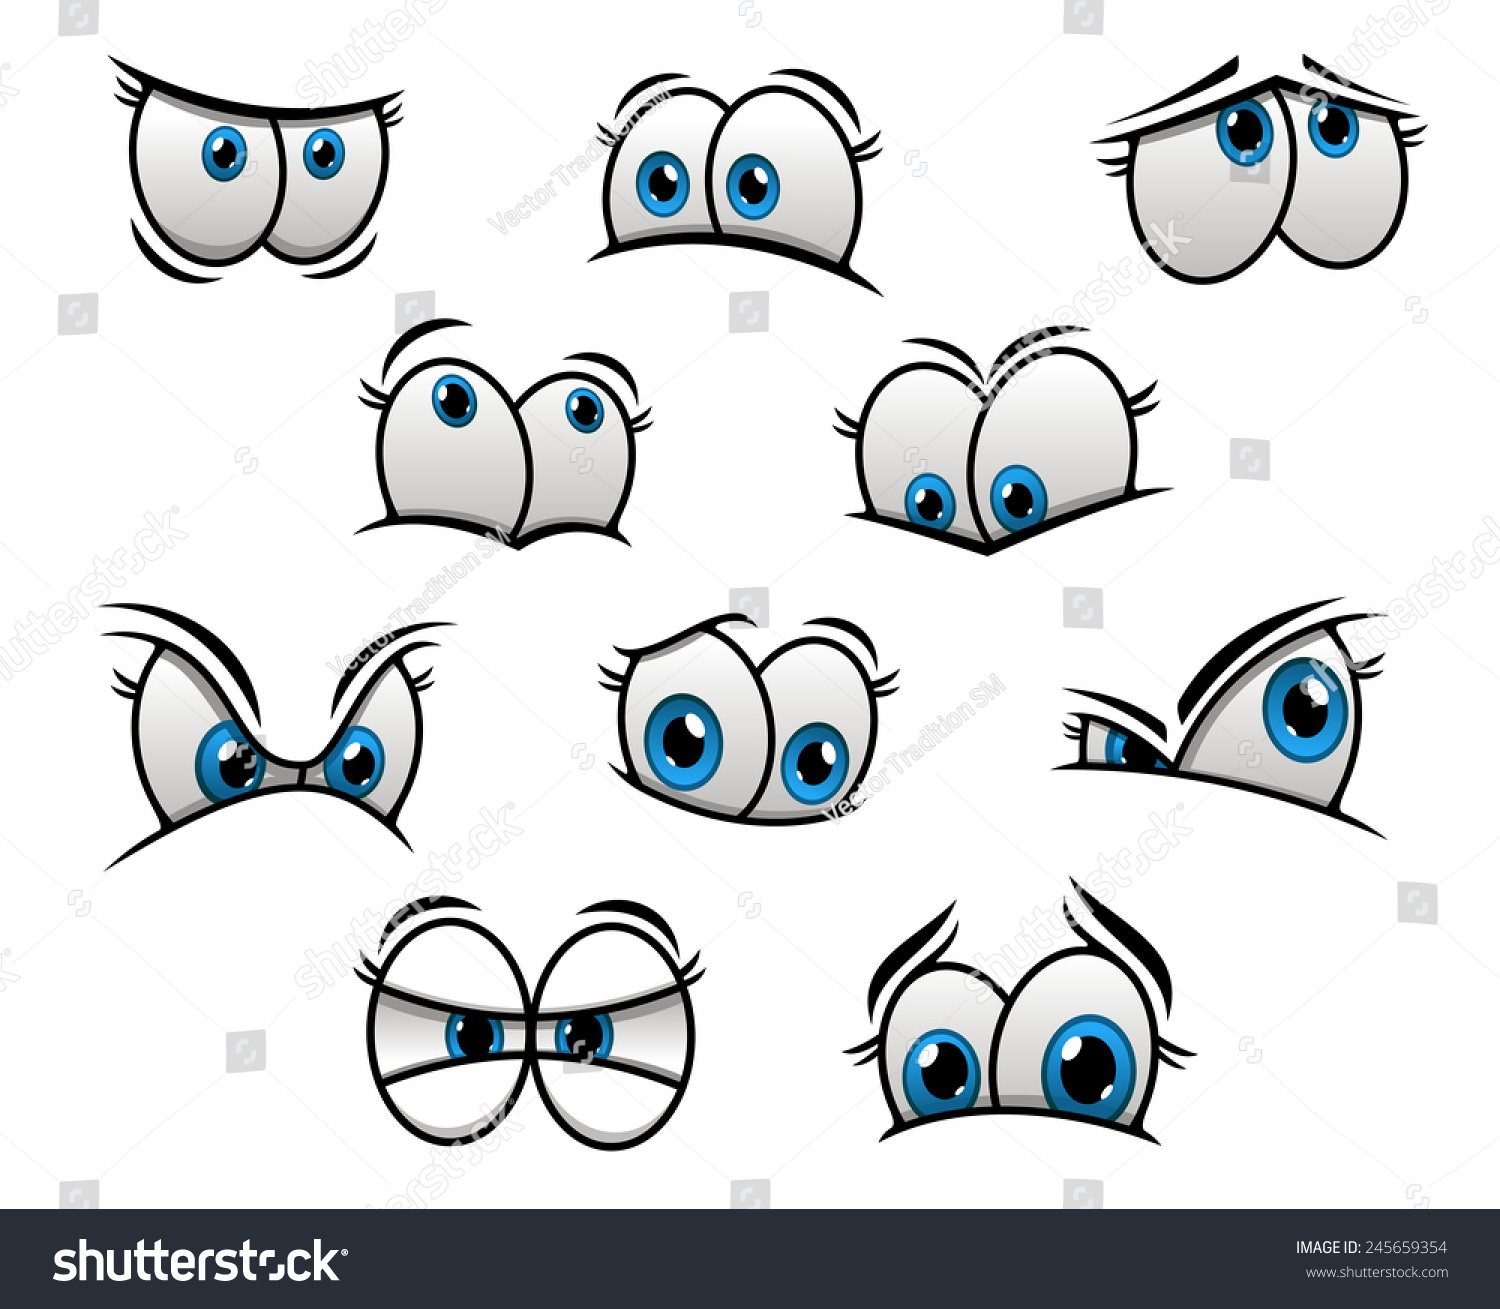 Cute Cartooned Big Blue Eyes With Happy Fun Sad And